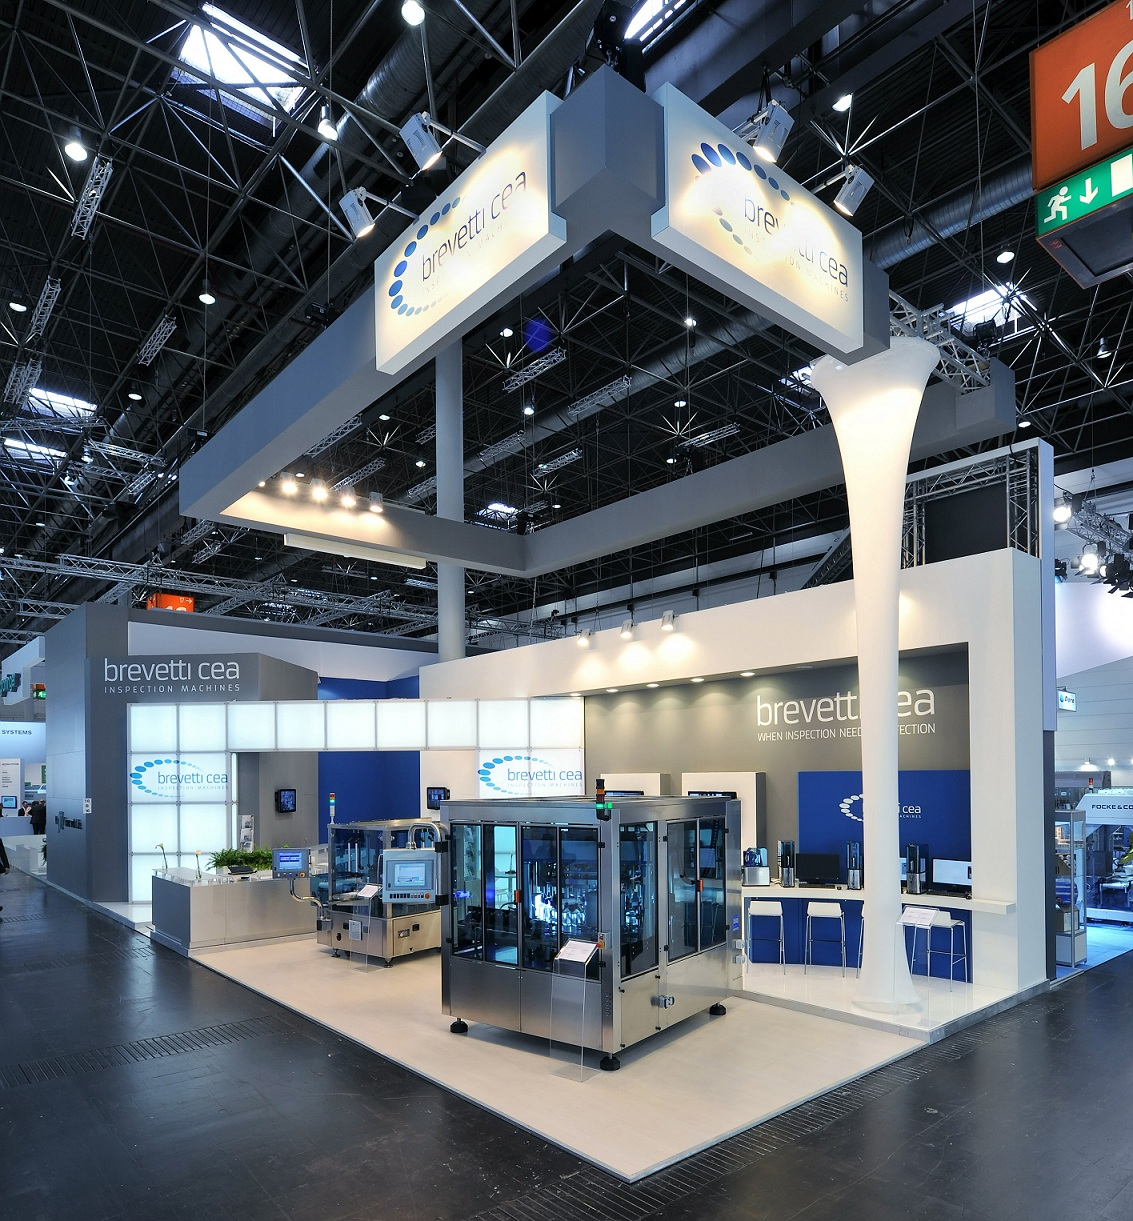 BREVETTI C.E.A. at INTERPACK in Düsseldorf